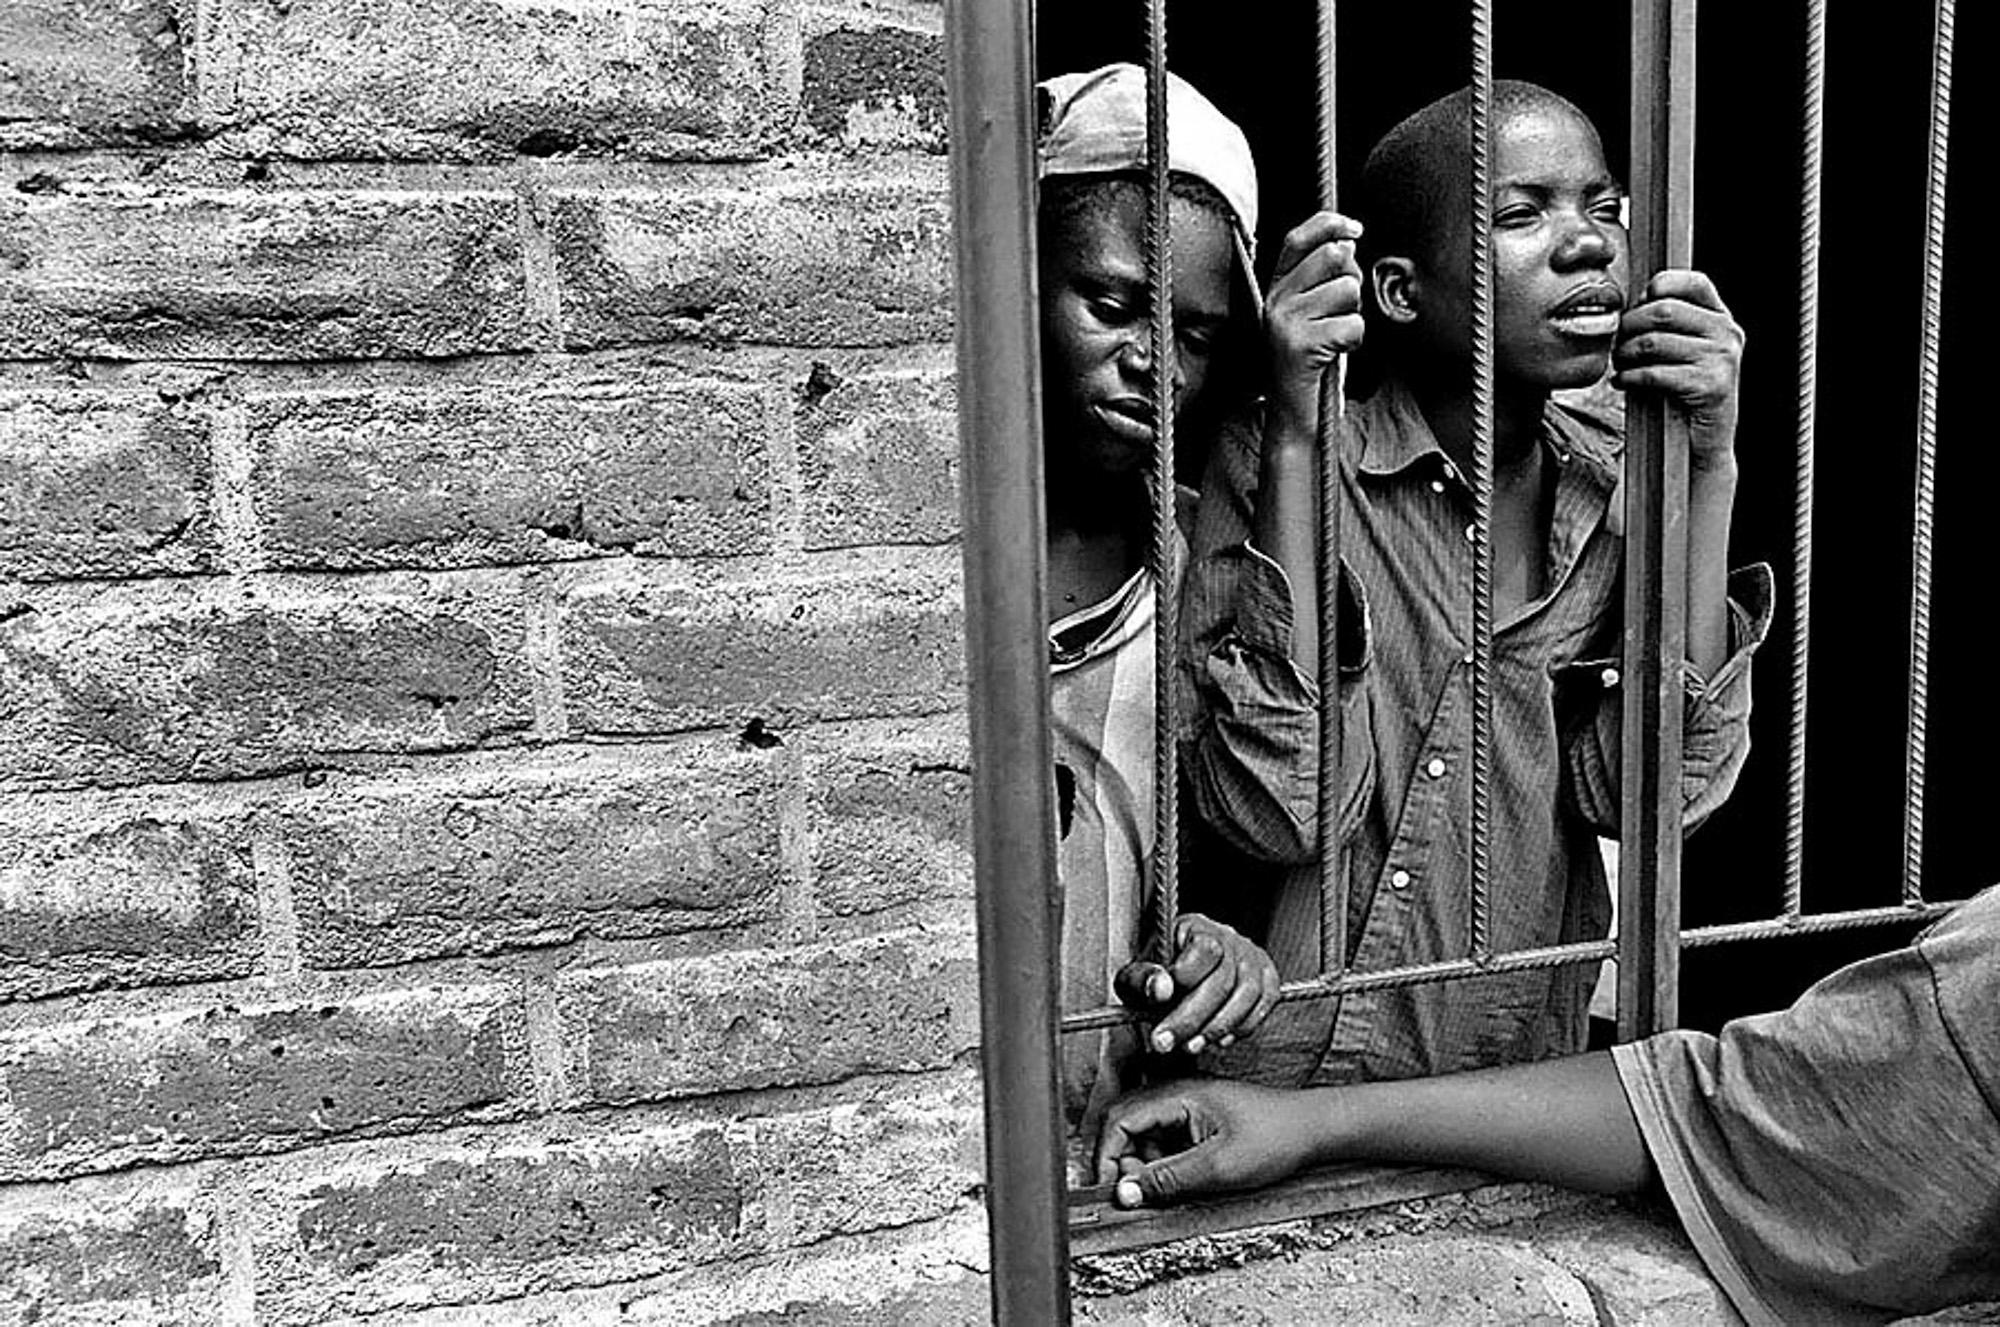 young boys looking through a barge window at namitete, Malawi people of east Africa 6/12/06 CATEGORY #22 FREELANCE